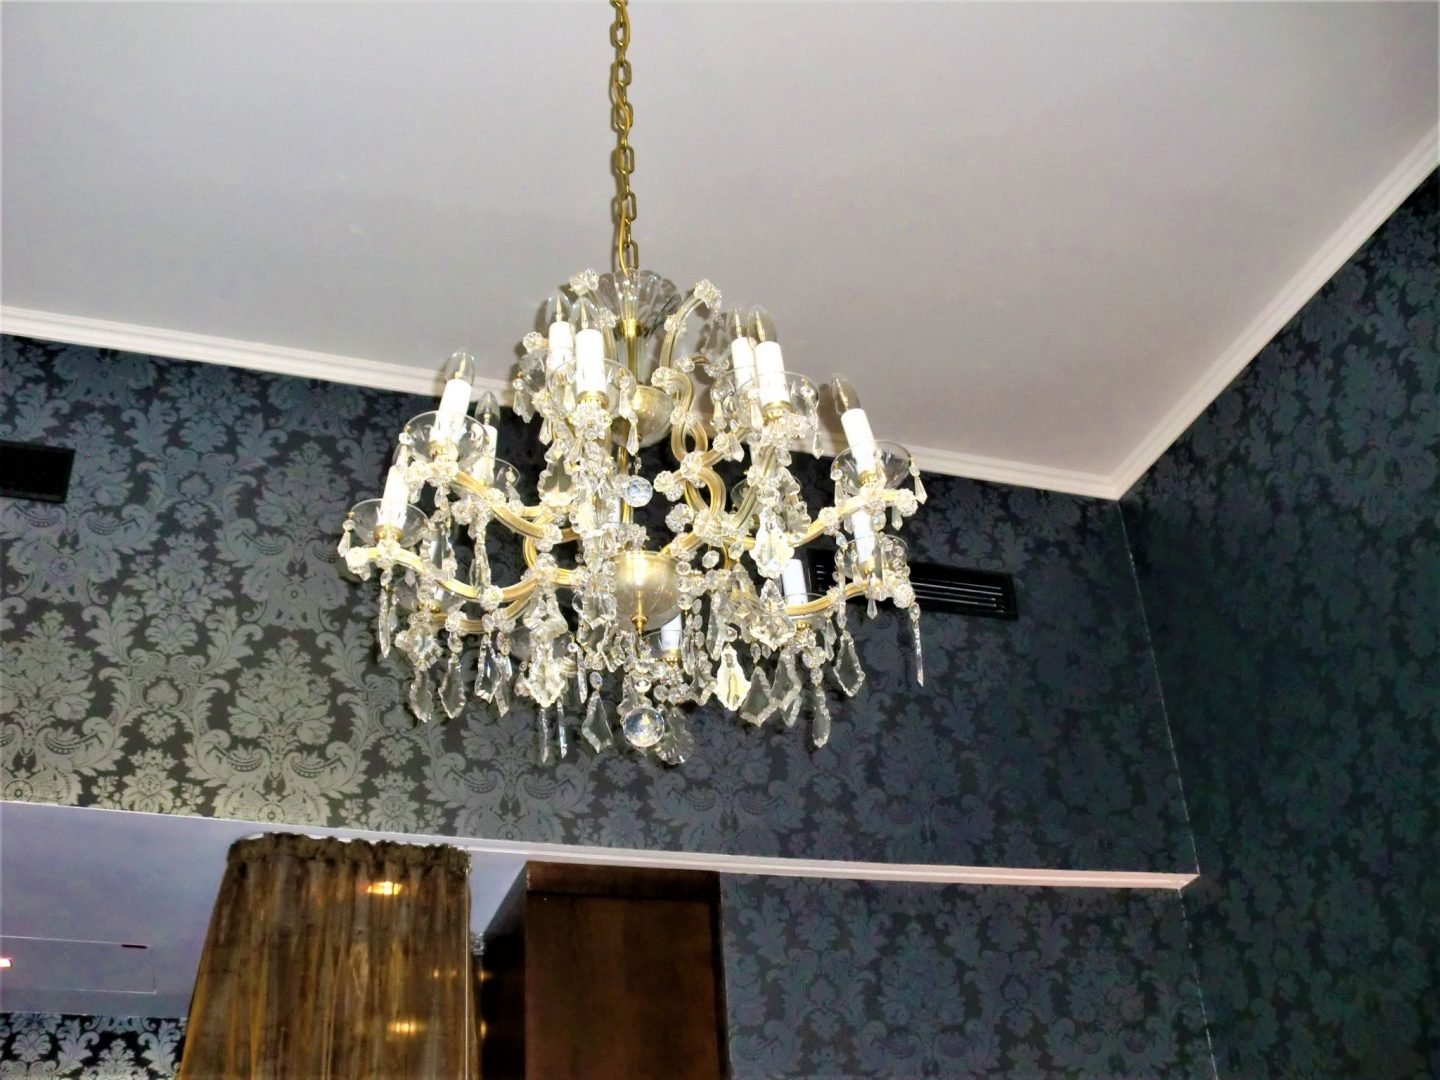 Boutique hotel in Vienna lamp 1440x1080 - Boutique hotel in Vienna: 1 amazing place for your stay